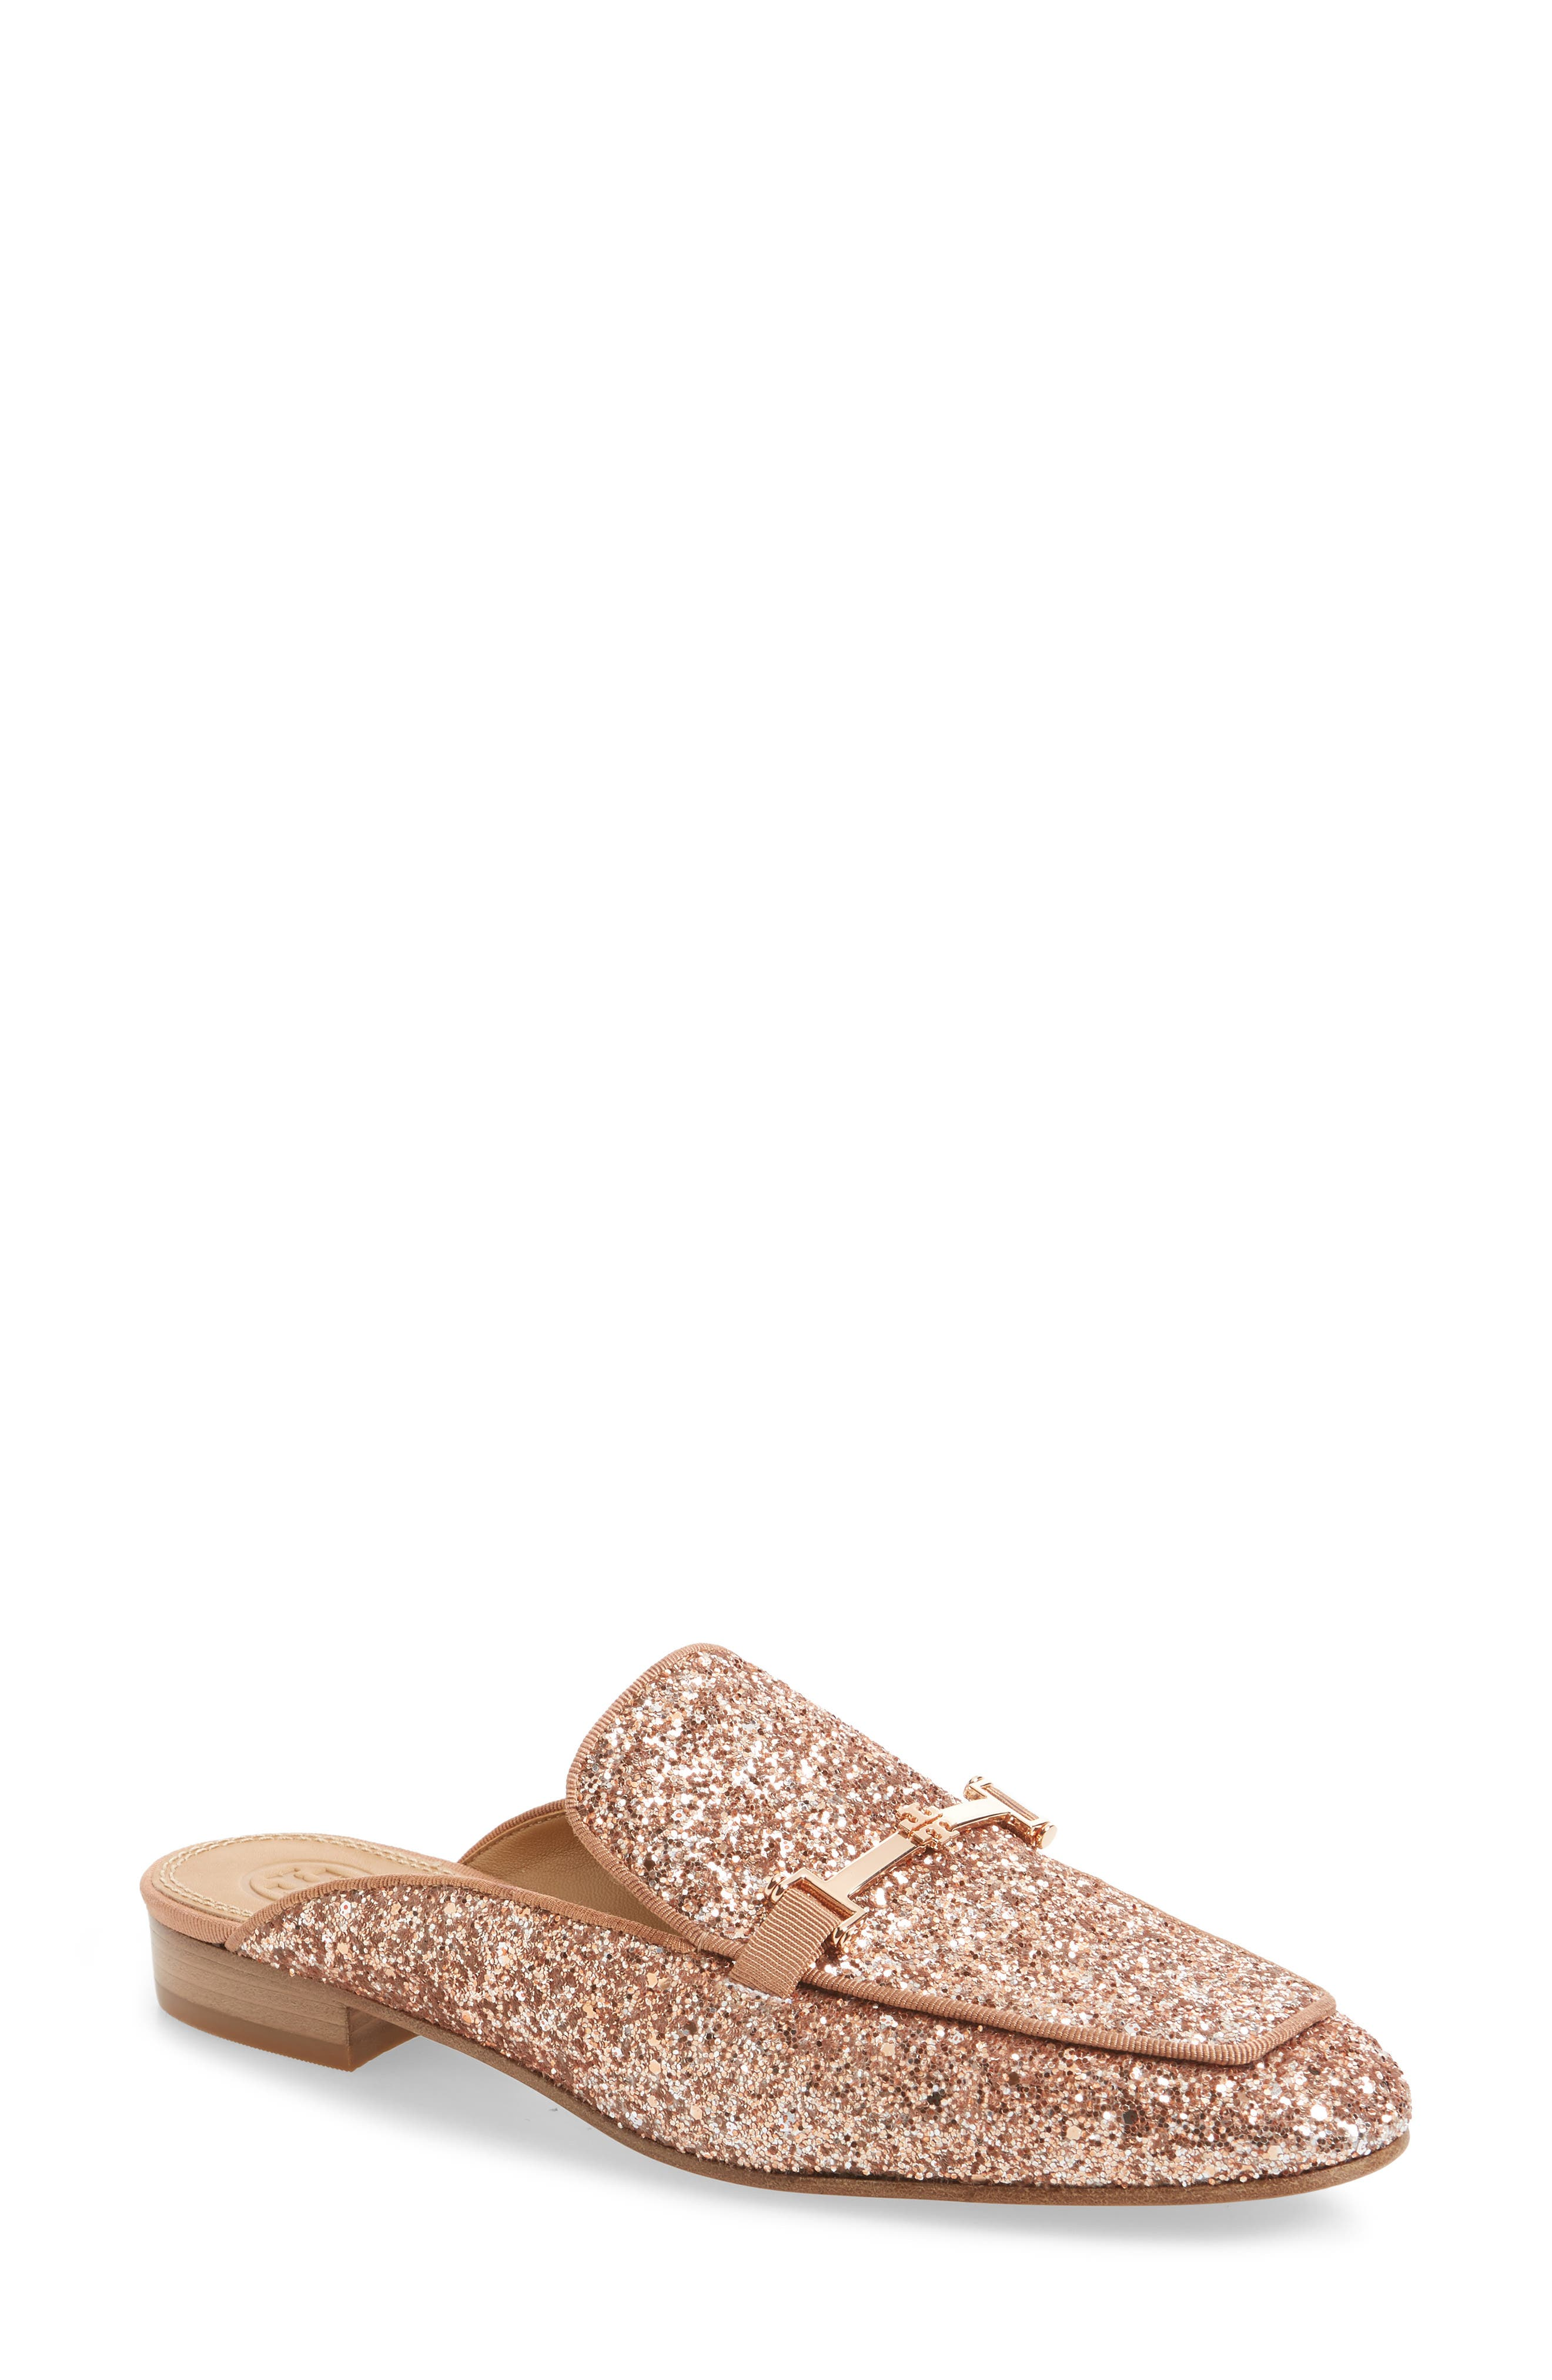 Amelia Loafer Mule,                             Main thumbnail 1, color,                             Rose Gold/ Rose Gold